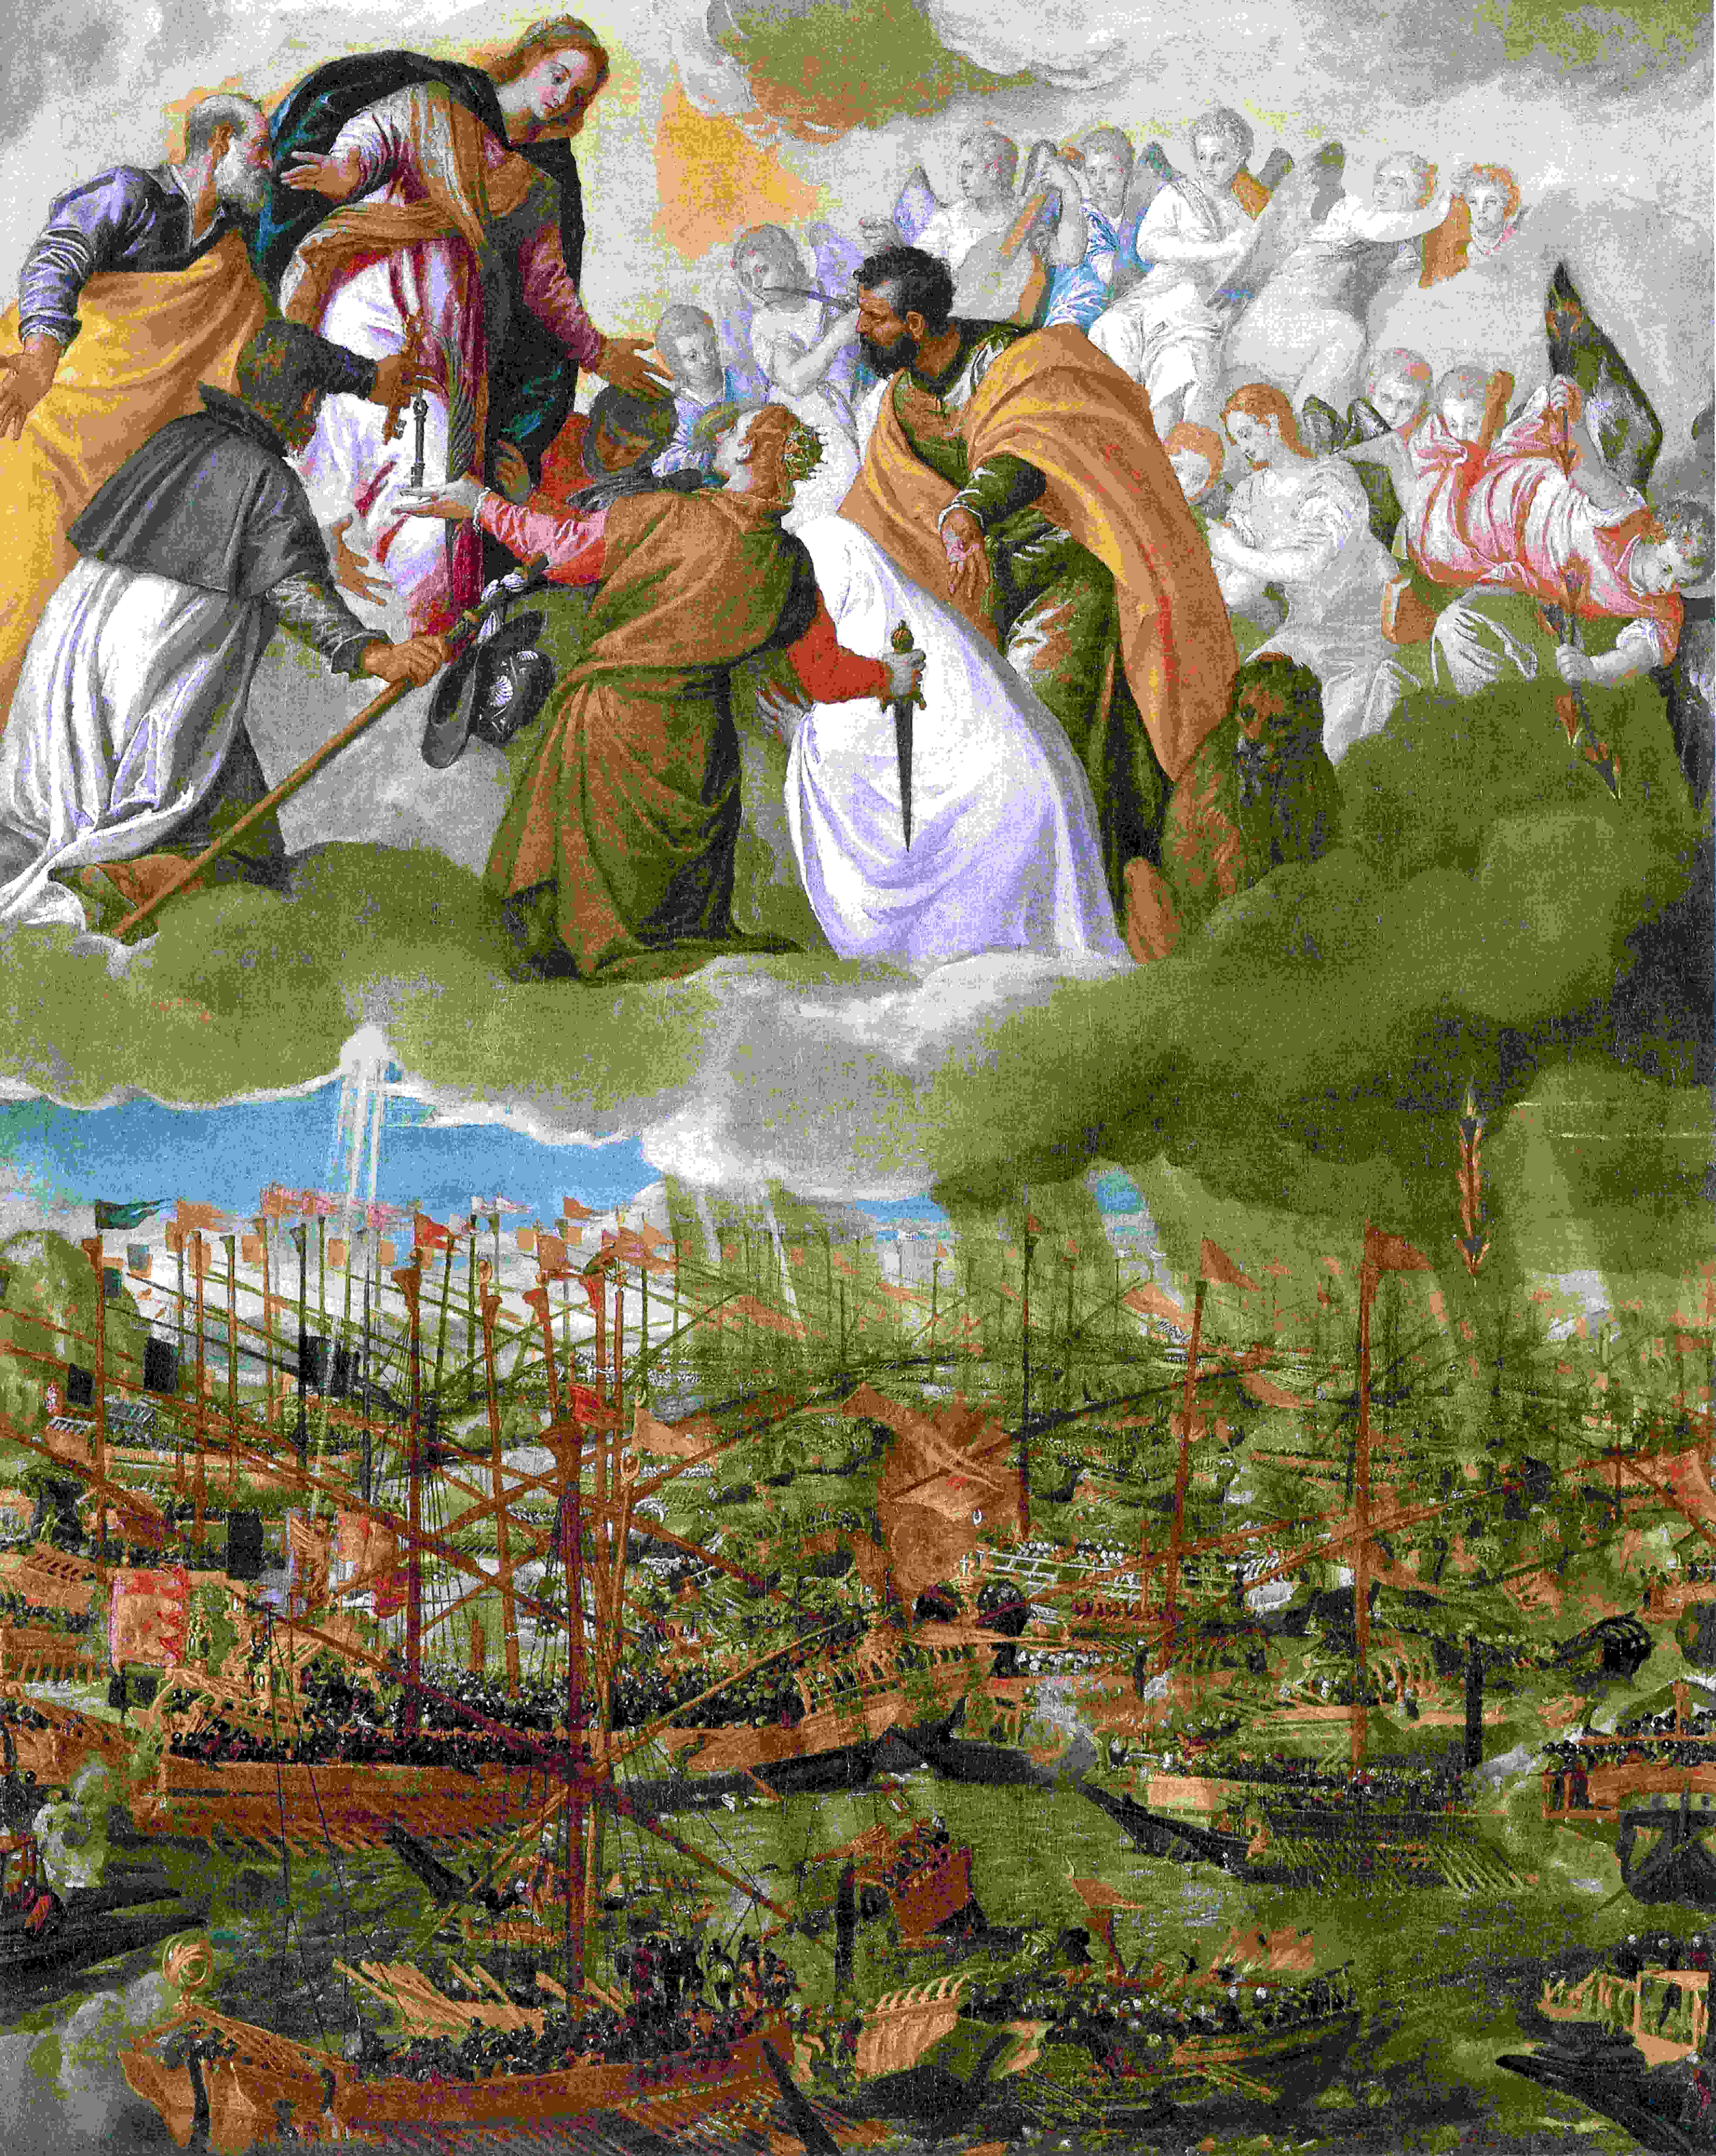 Wikioo.org - The Encyclopedia of Fine Arts - Painting, Artwork by Paolo Veronese - Battle of Lepanto